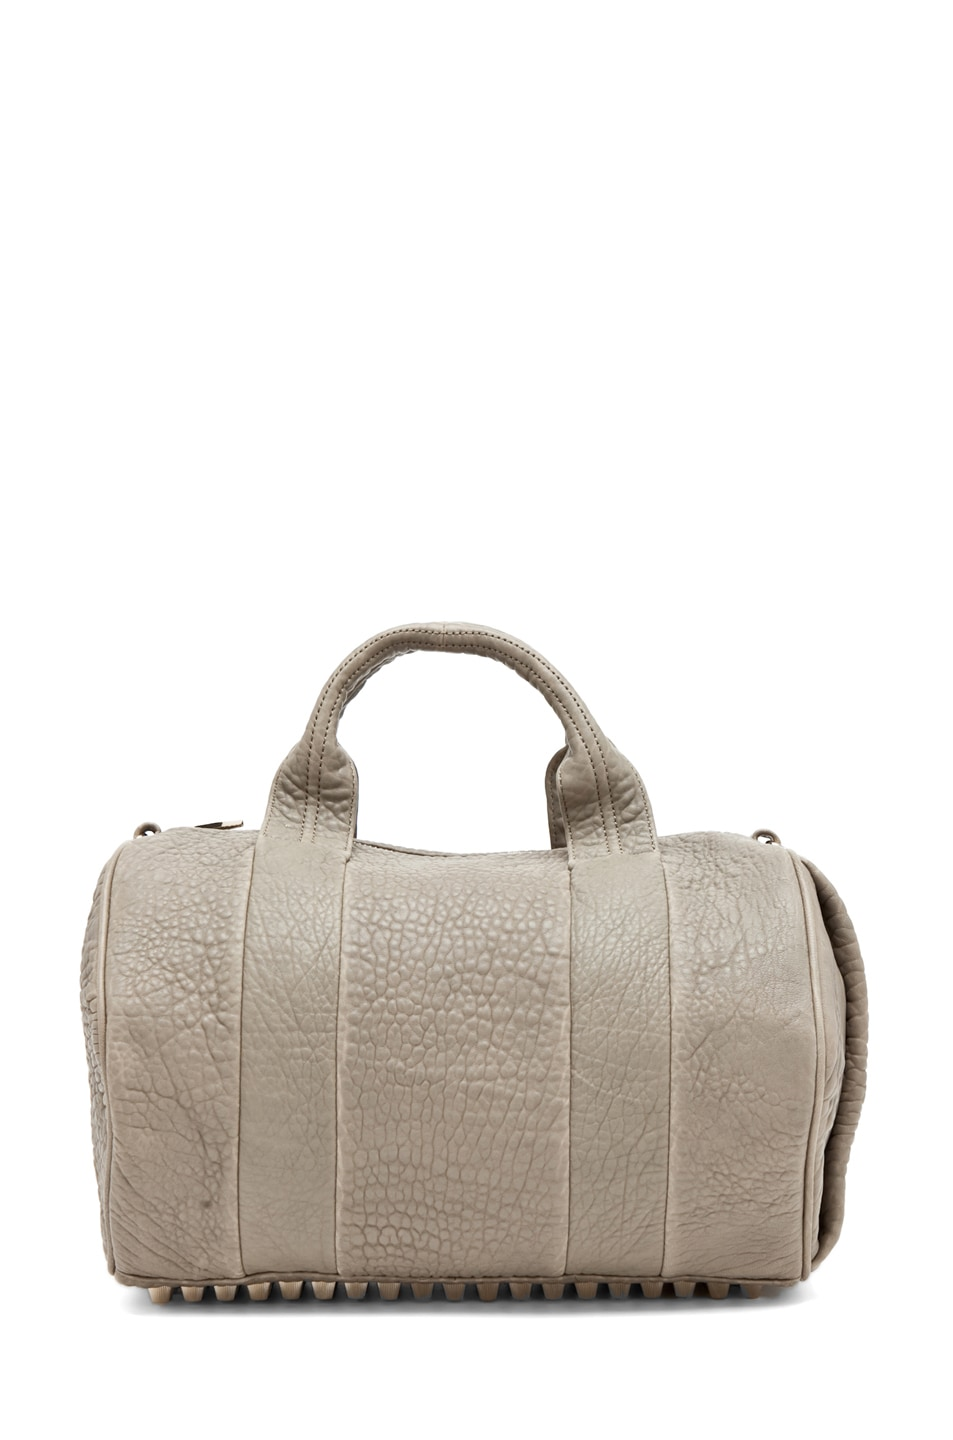 Image 5 of Alexander Wang Rocco Satchel in Granite